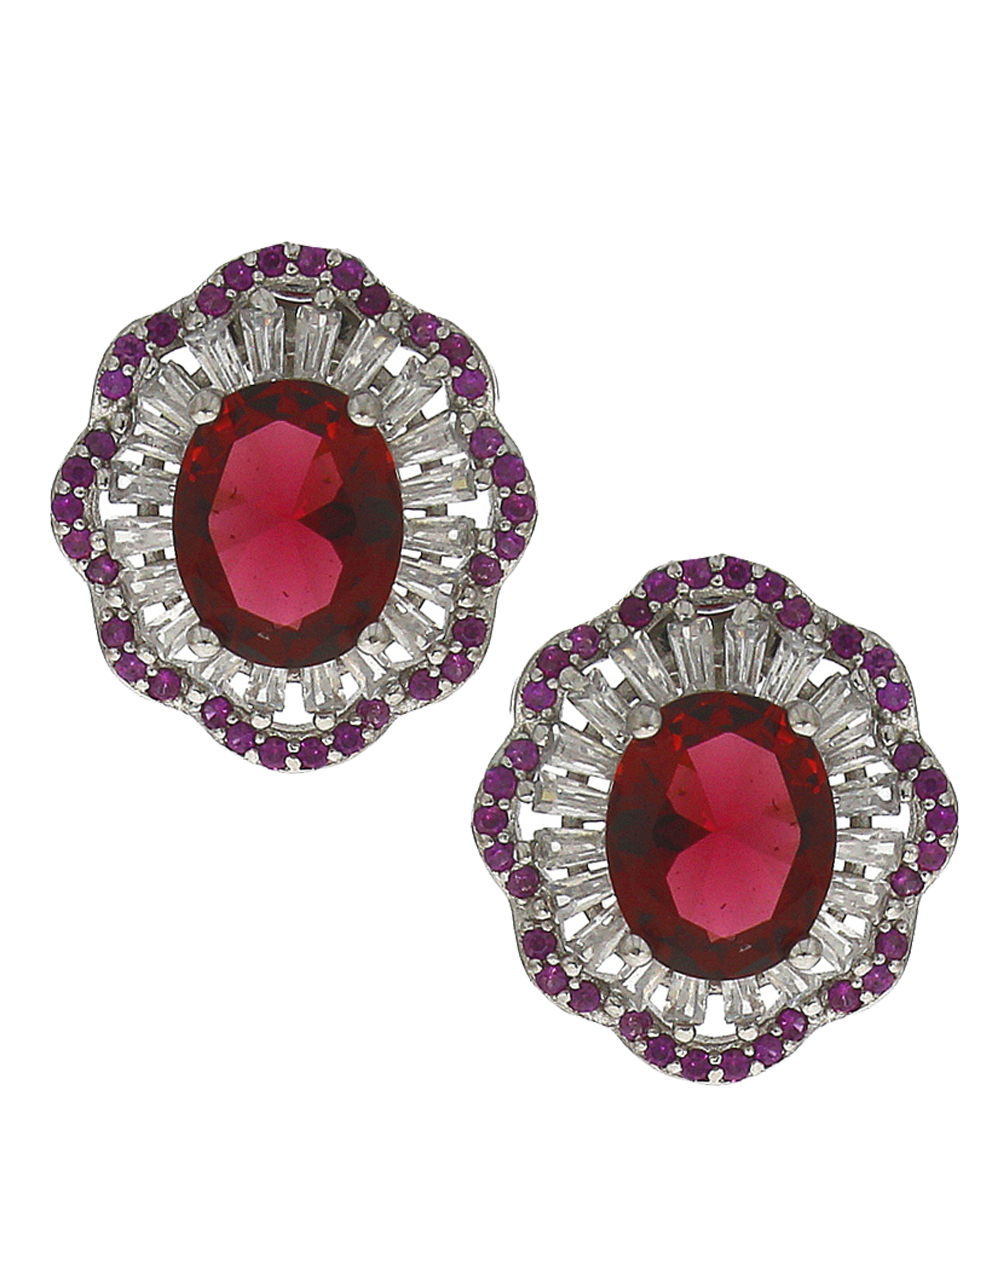 Classy ruby stones studded silver finish floral design pendant with earrings